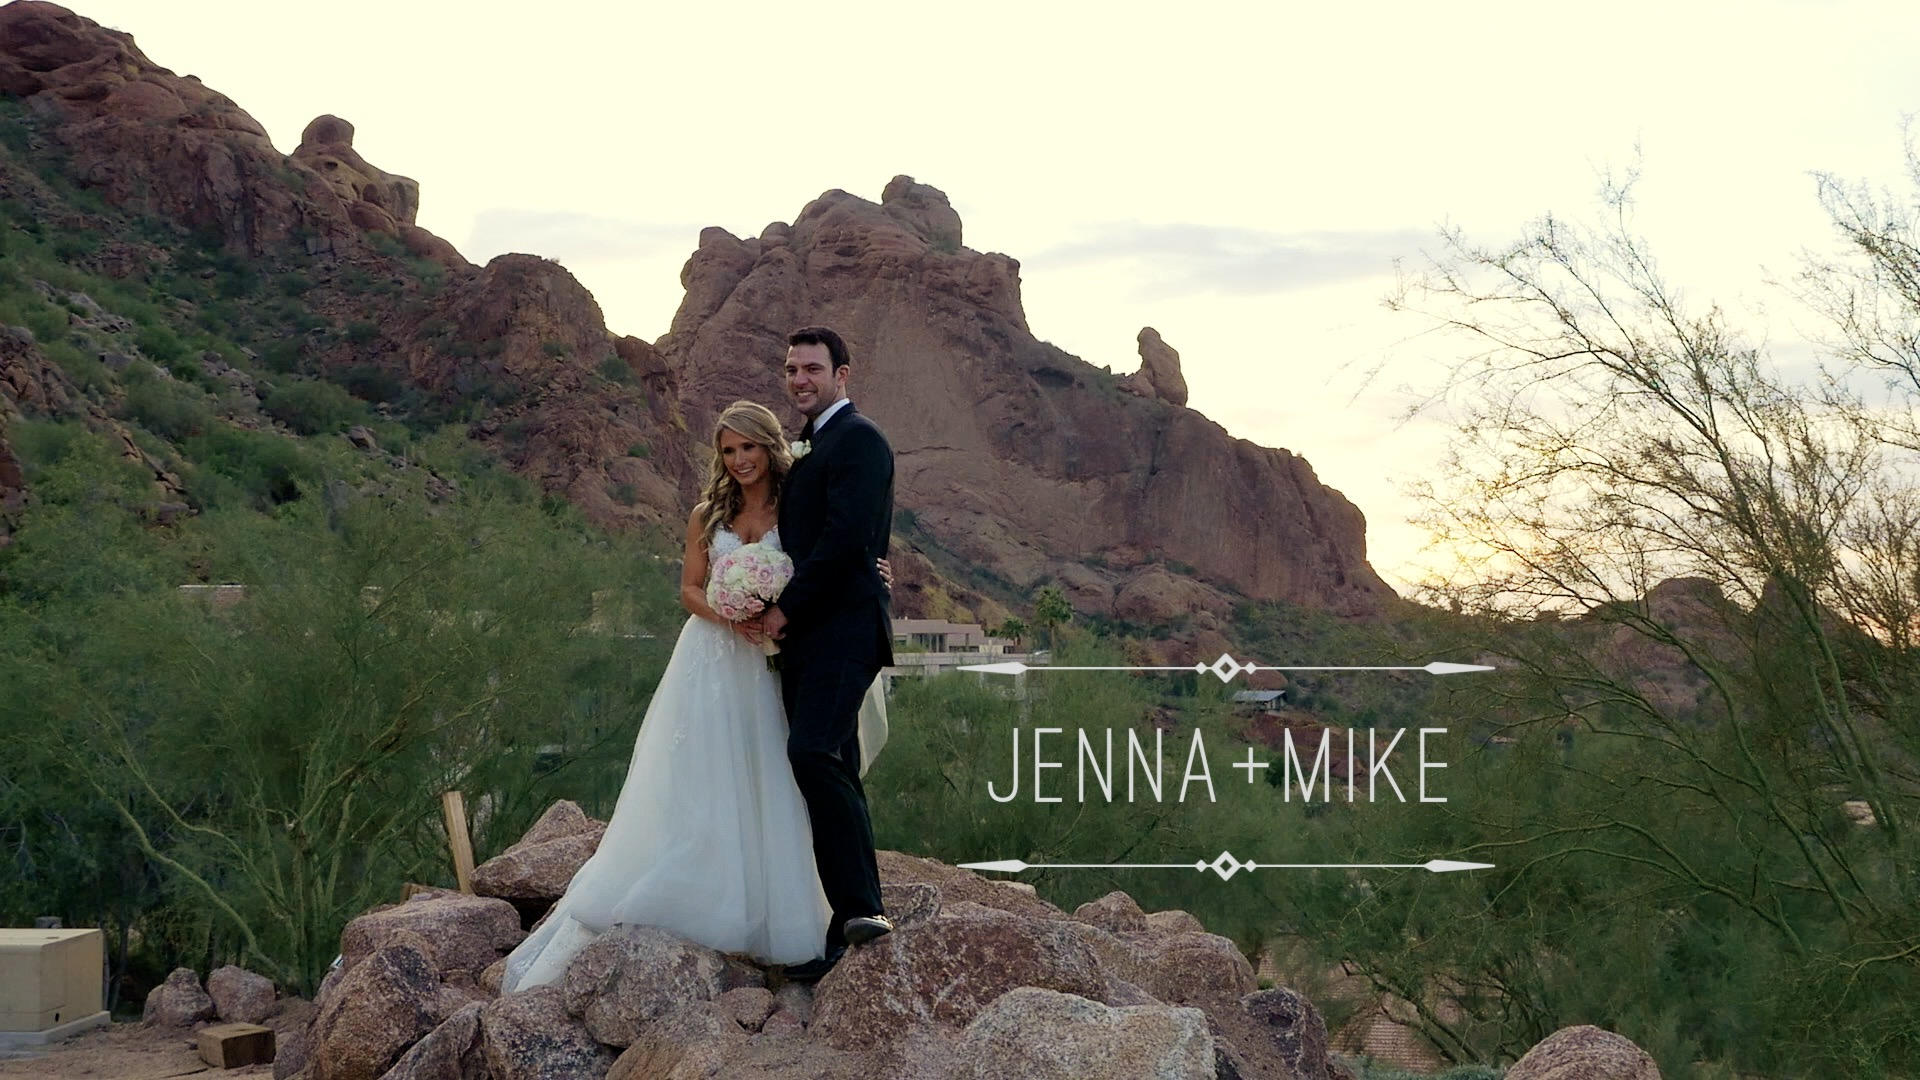 Jenna + Mike | Paradise Valley, Arizona | Sancuary at Camelback Mountain